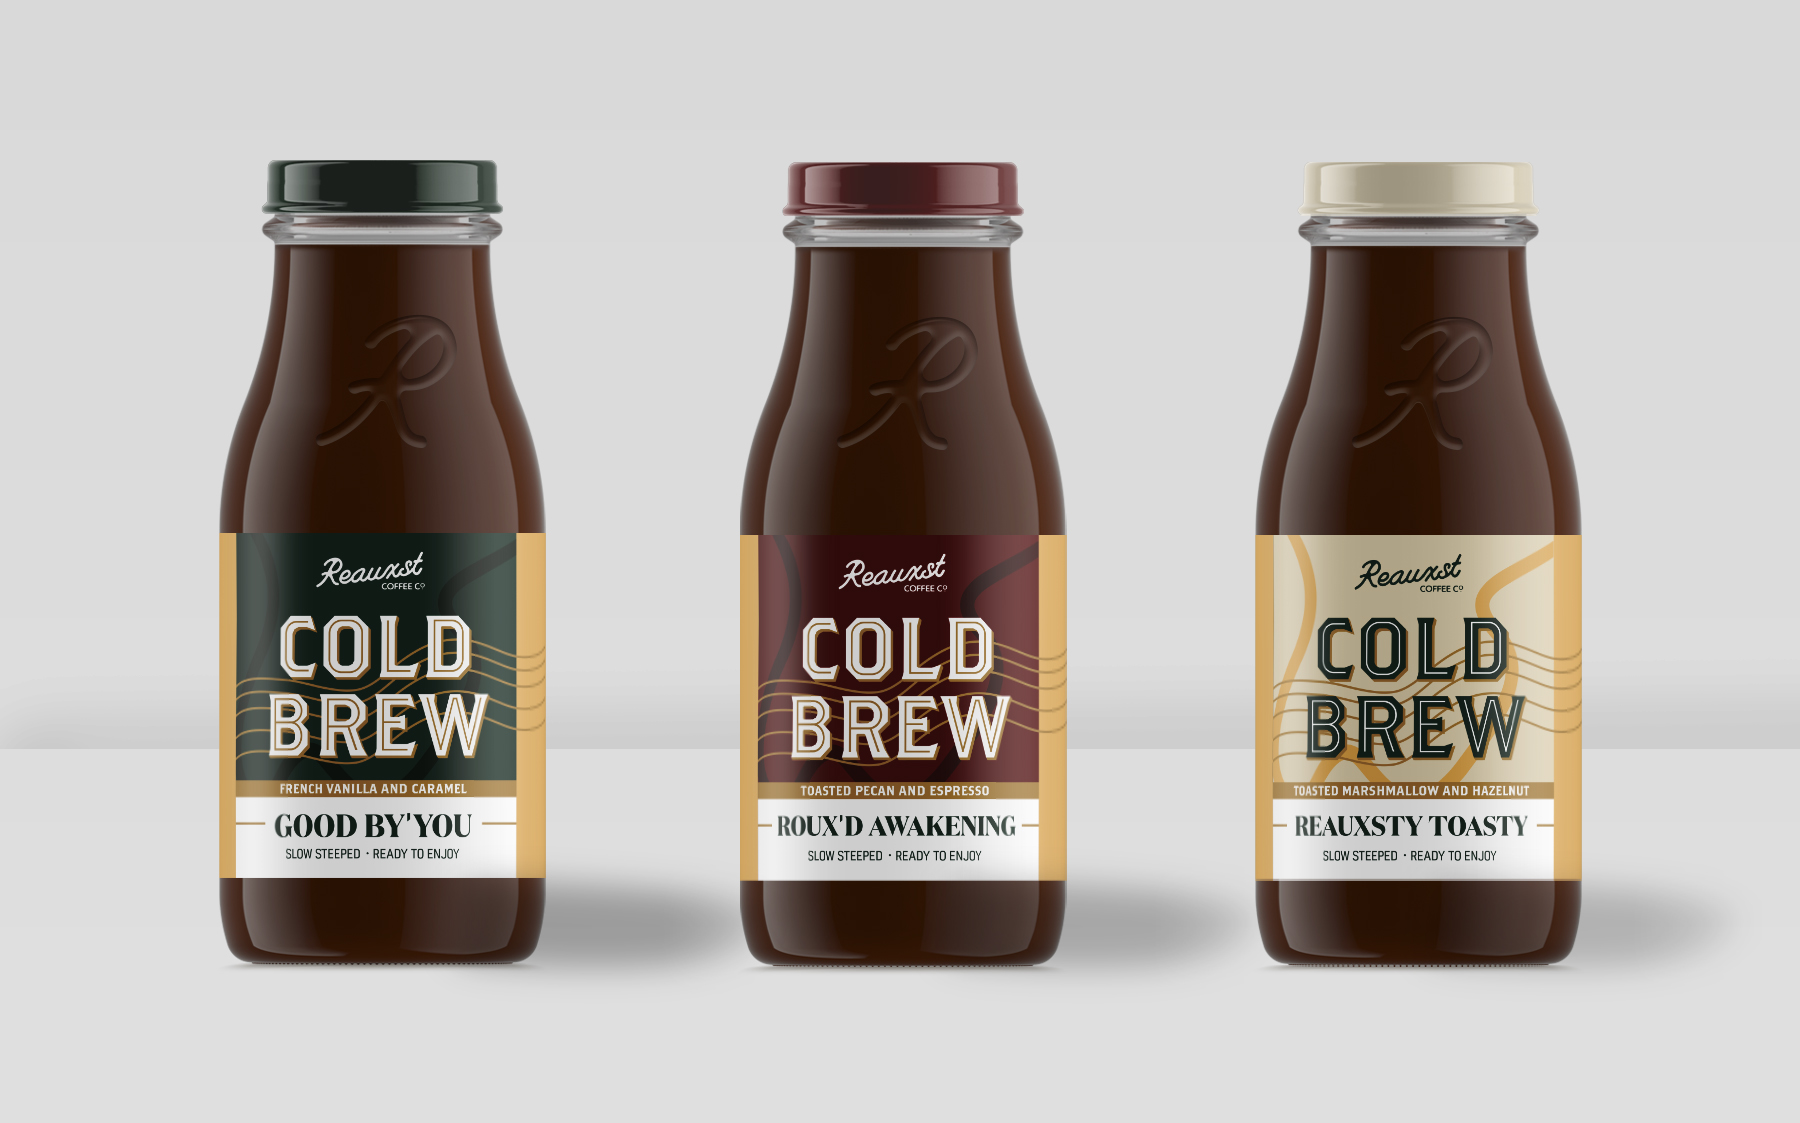 reauxst cold brew flavors grey.jpg